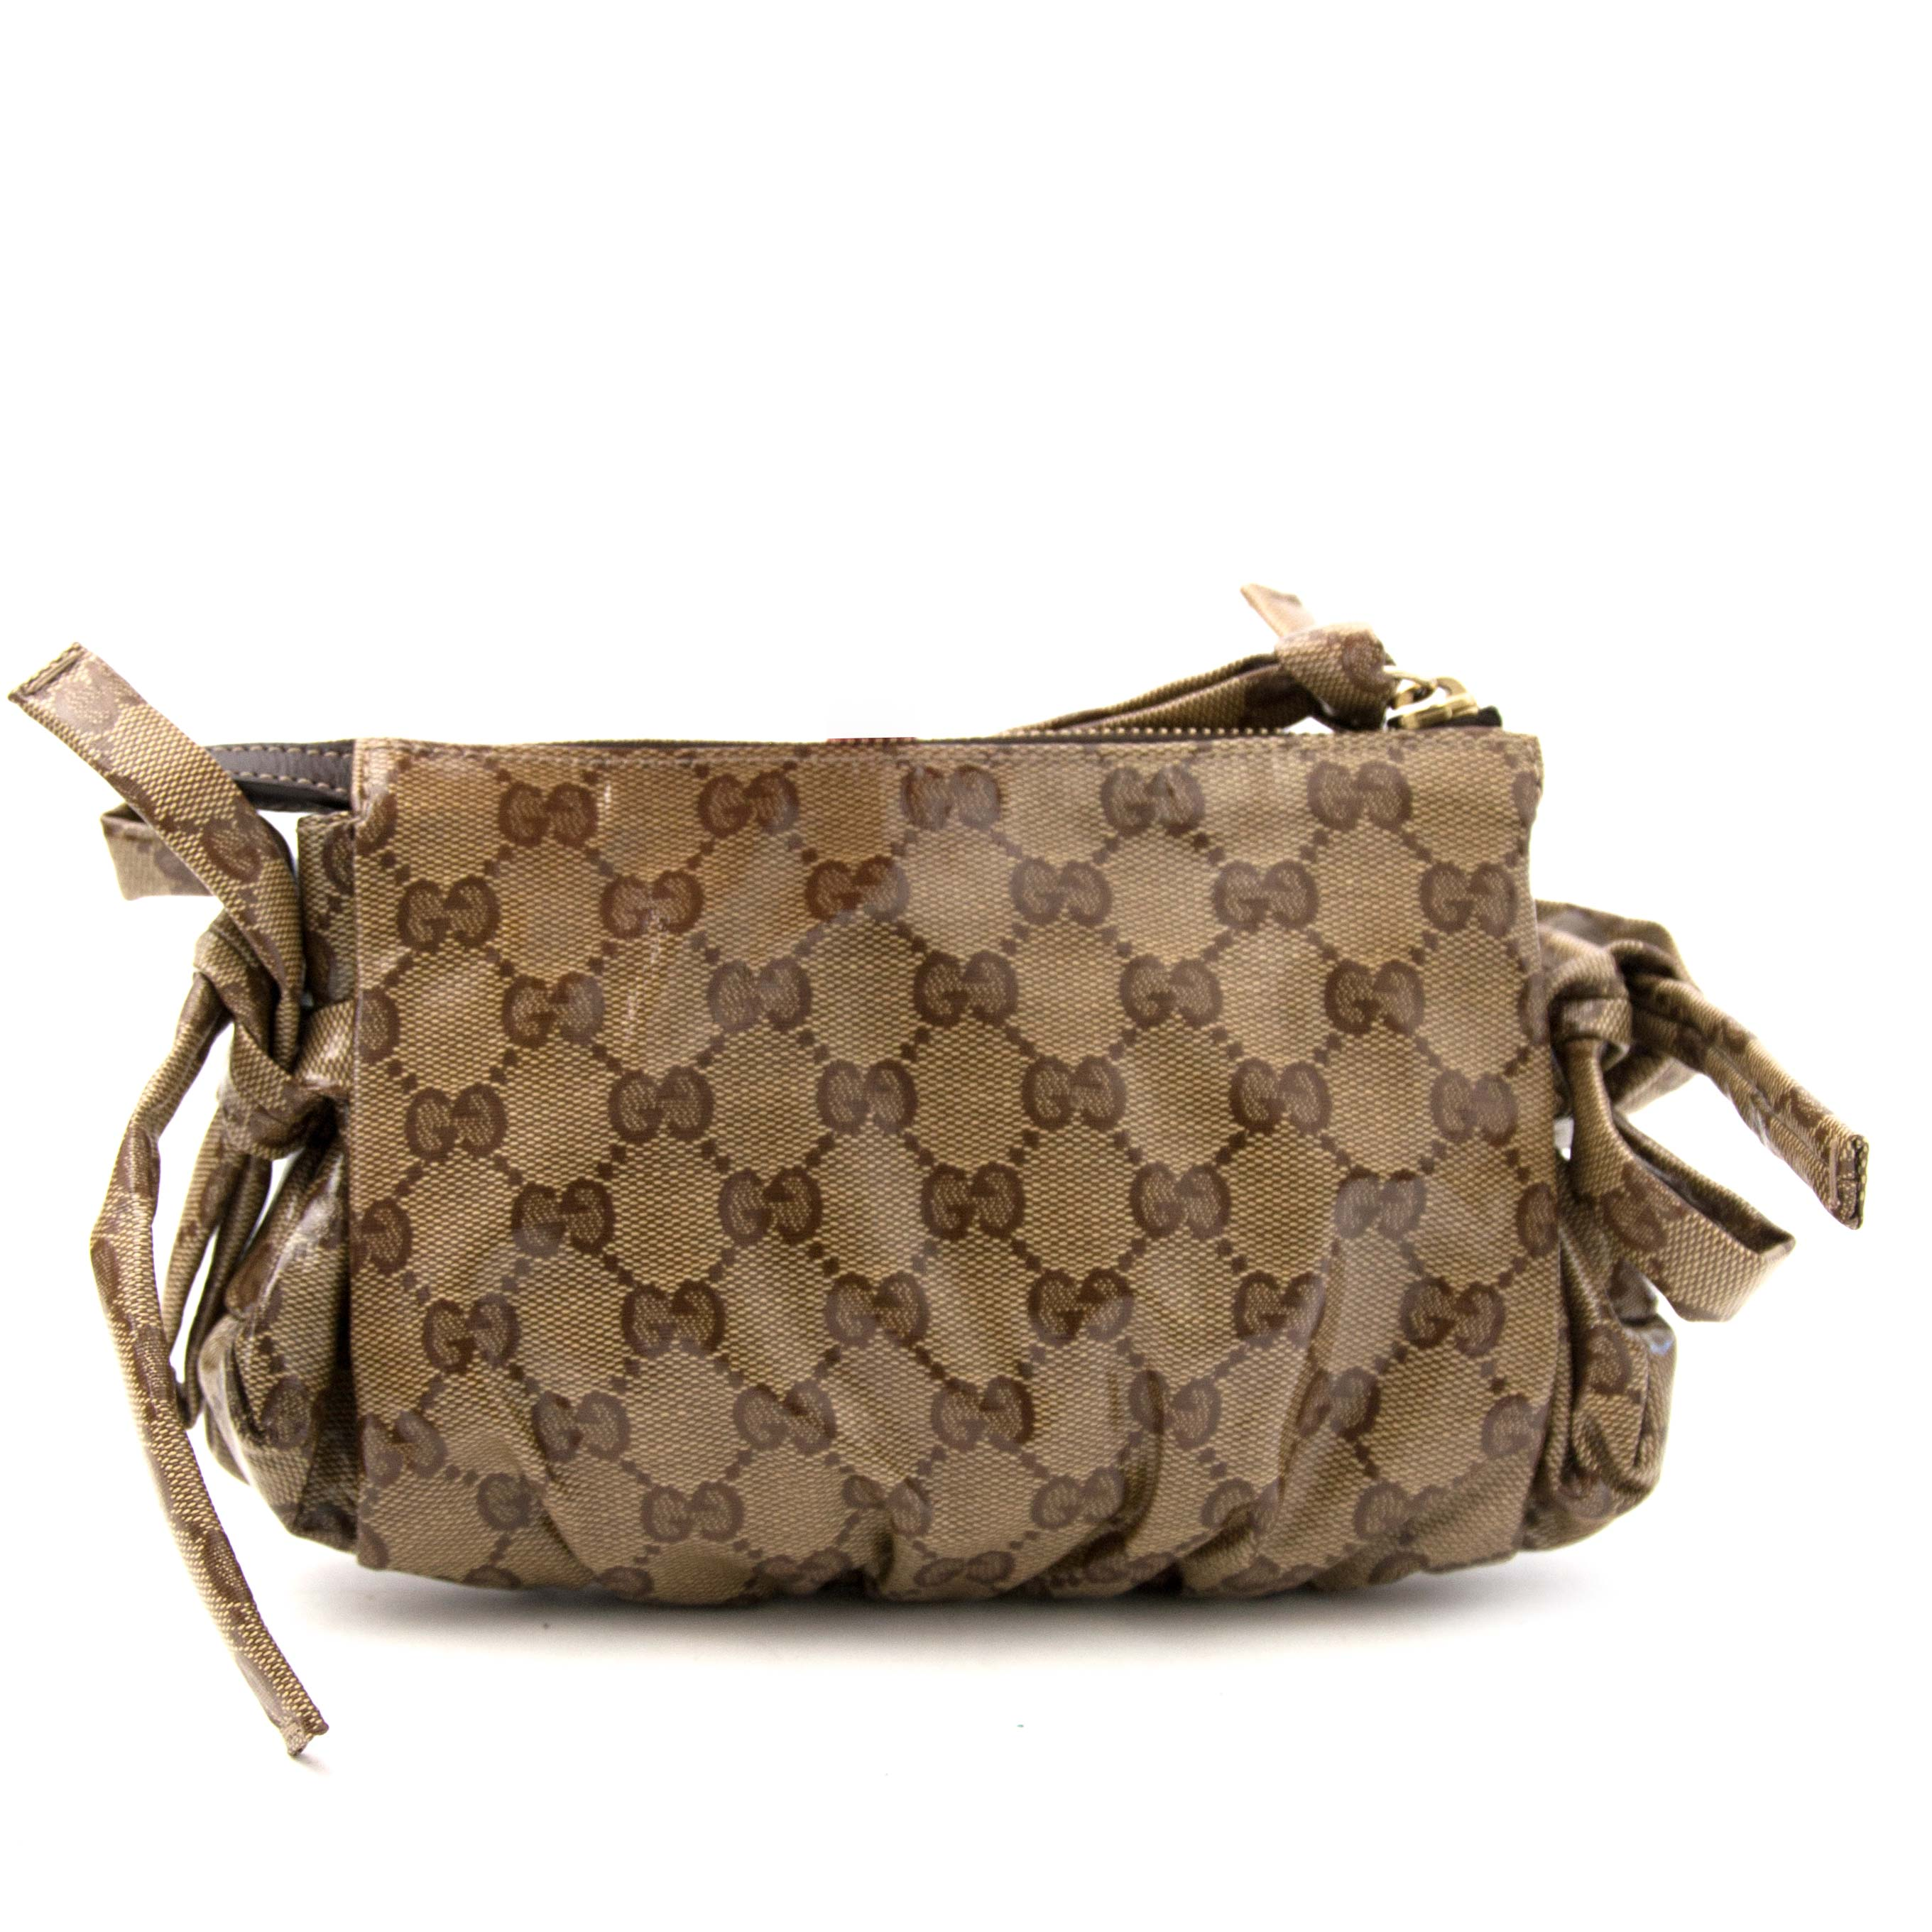 buy now online your secondhand Gucci Crystal Hysteria Clutch on labellov.com